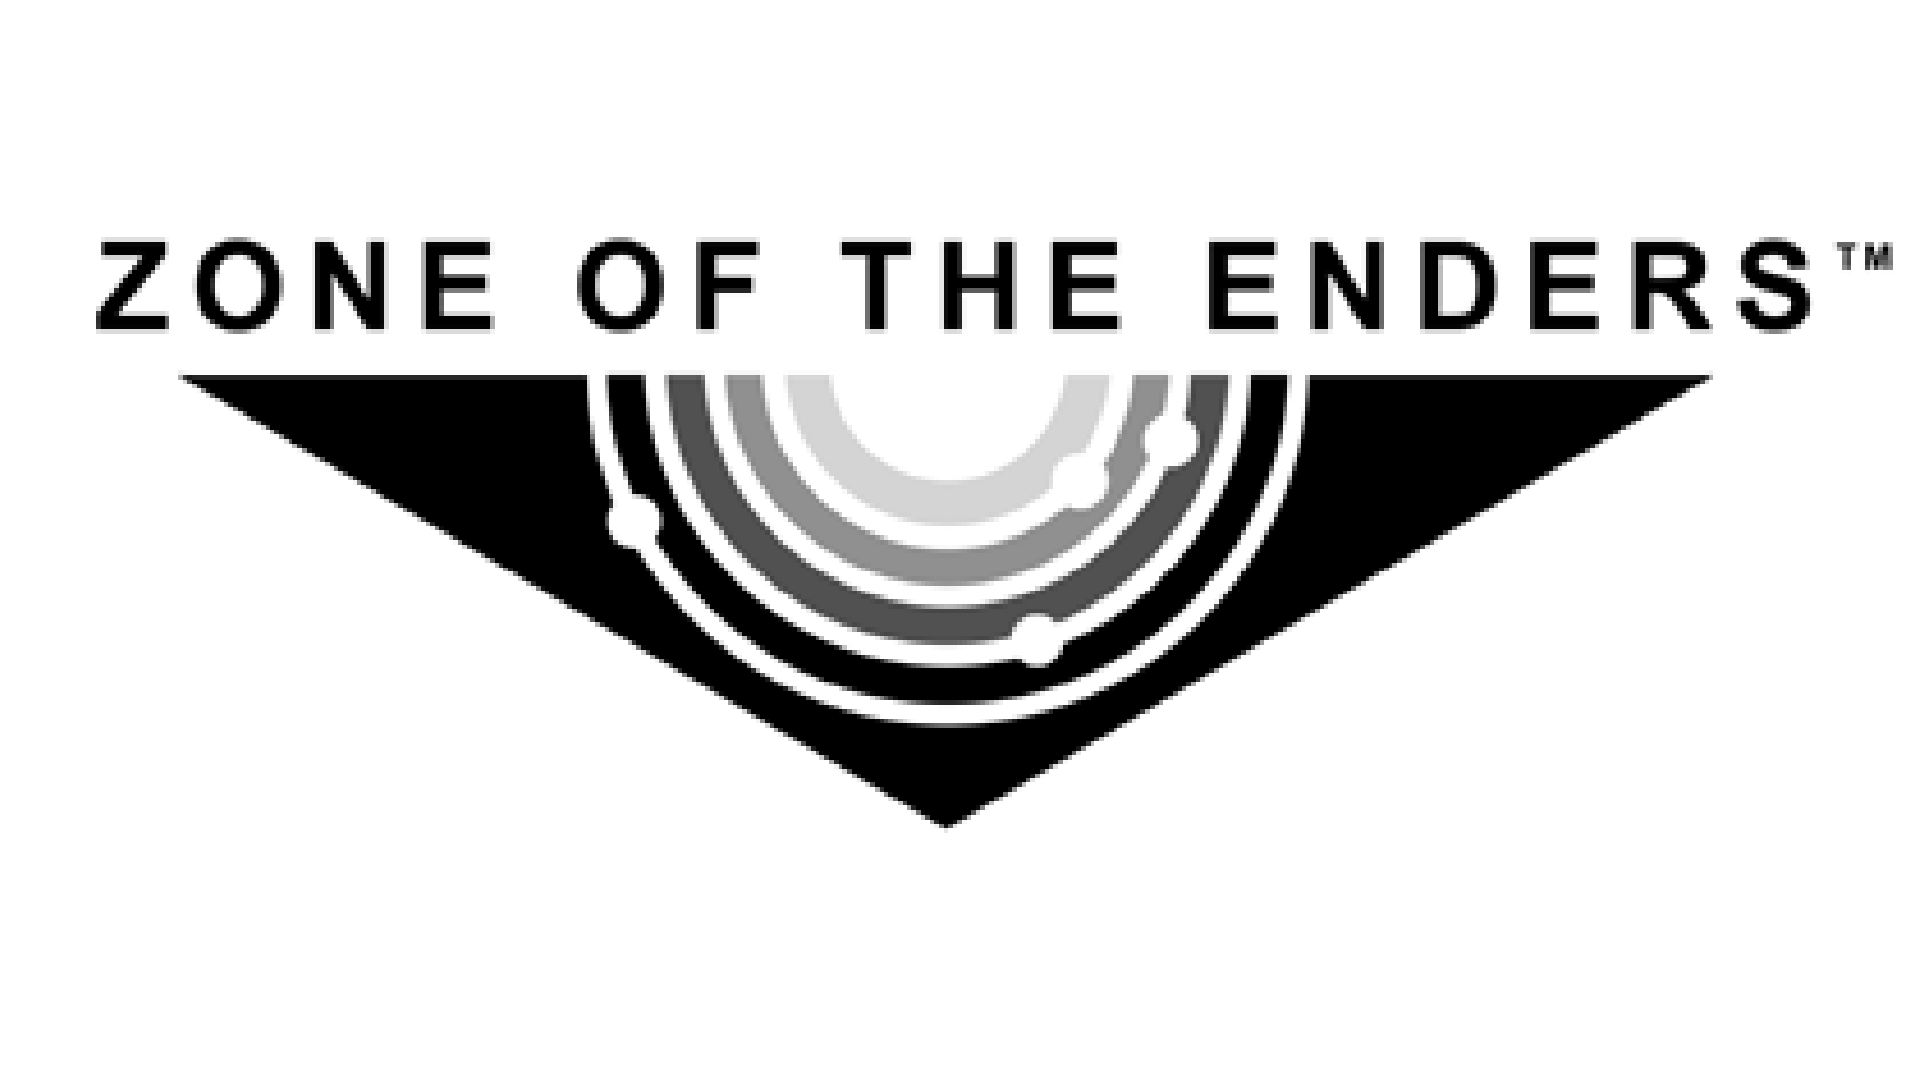 Zone of the Enders Logo